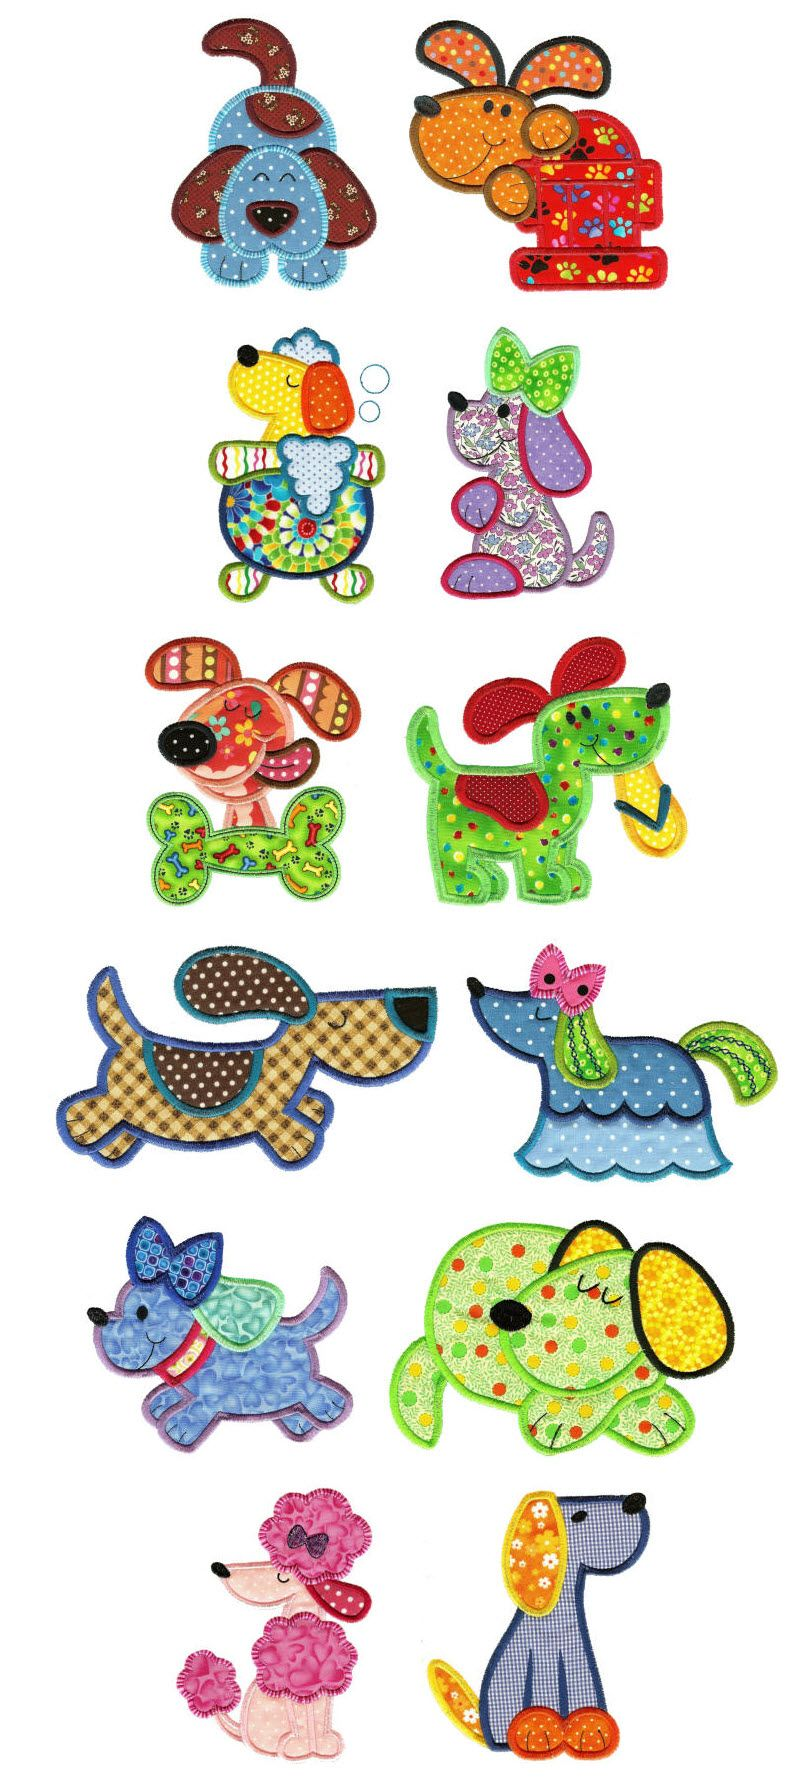 Embroidery | Free Machine Embroidery Designs | Crazy Dogs Applique ...